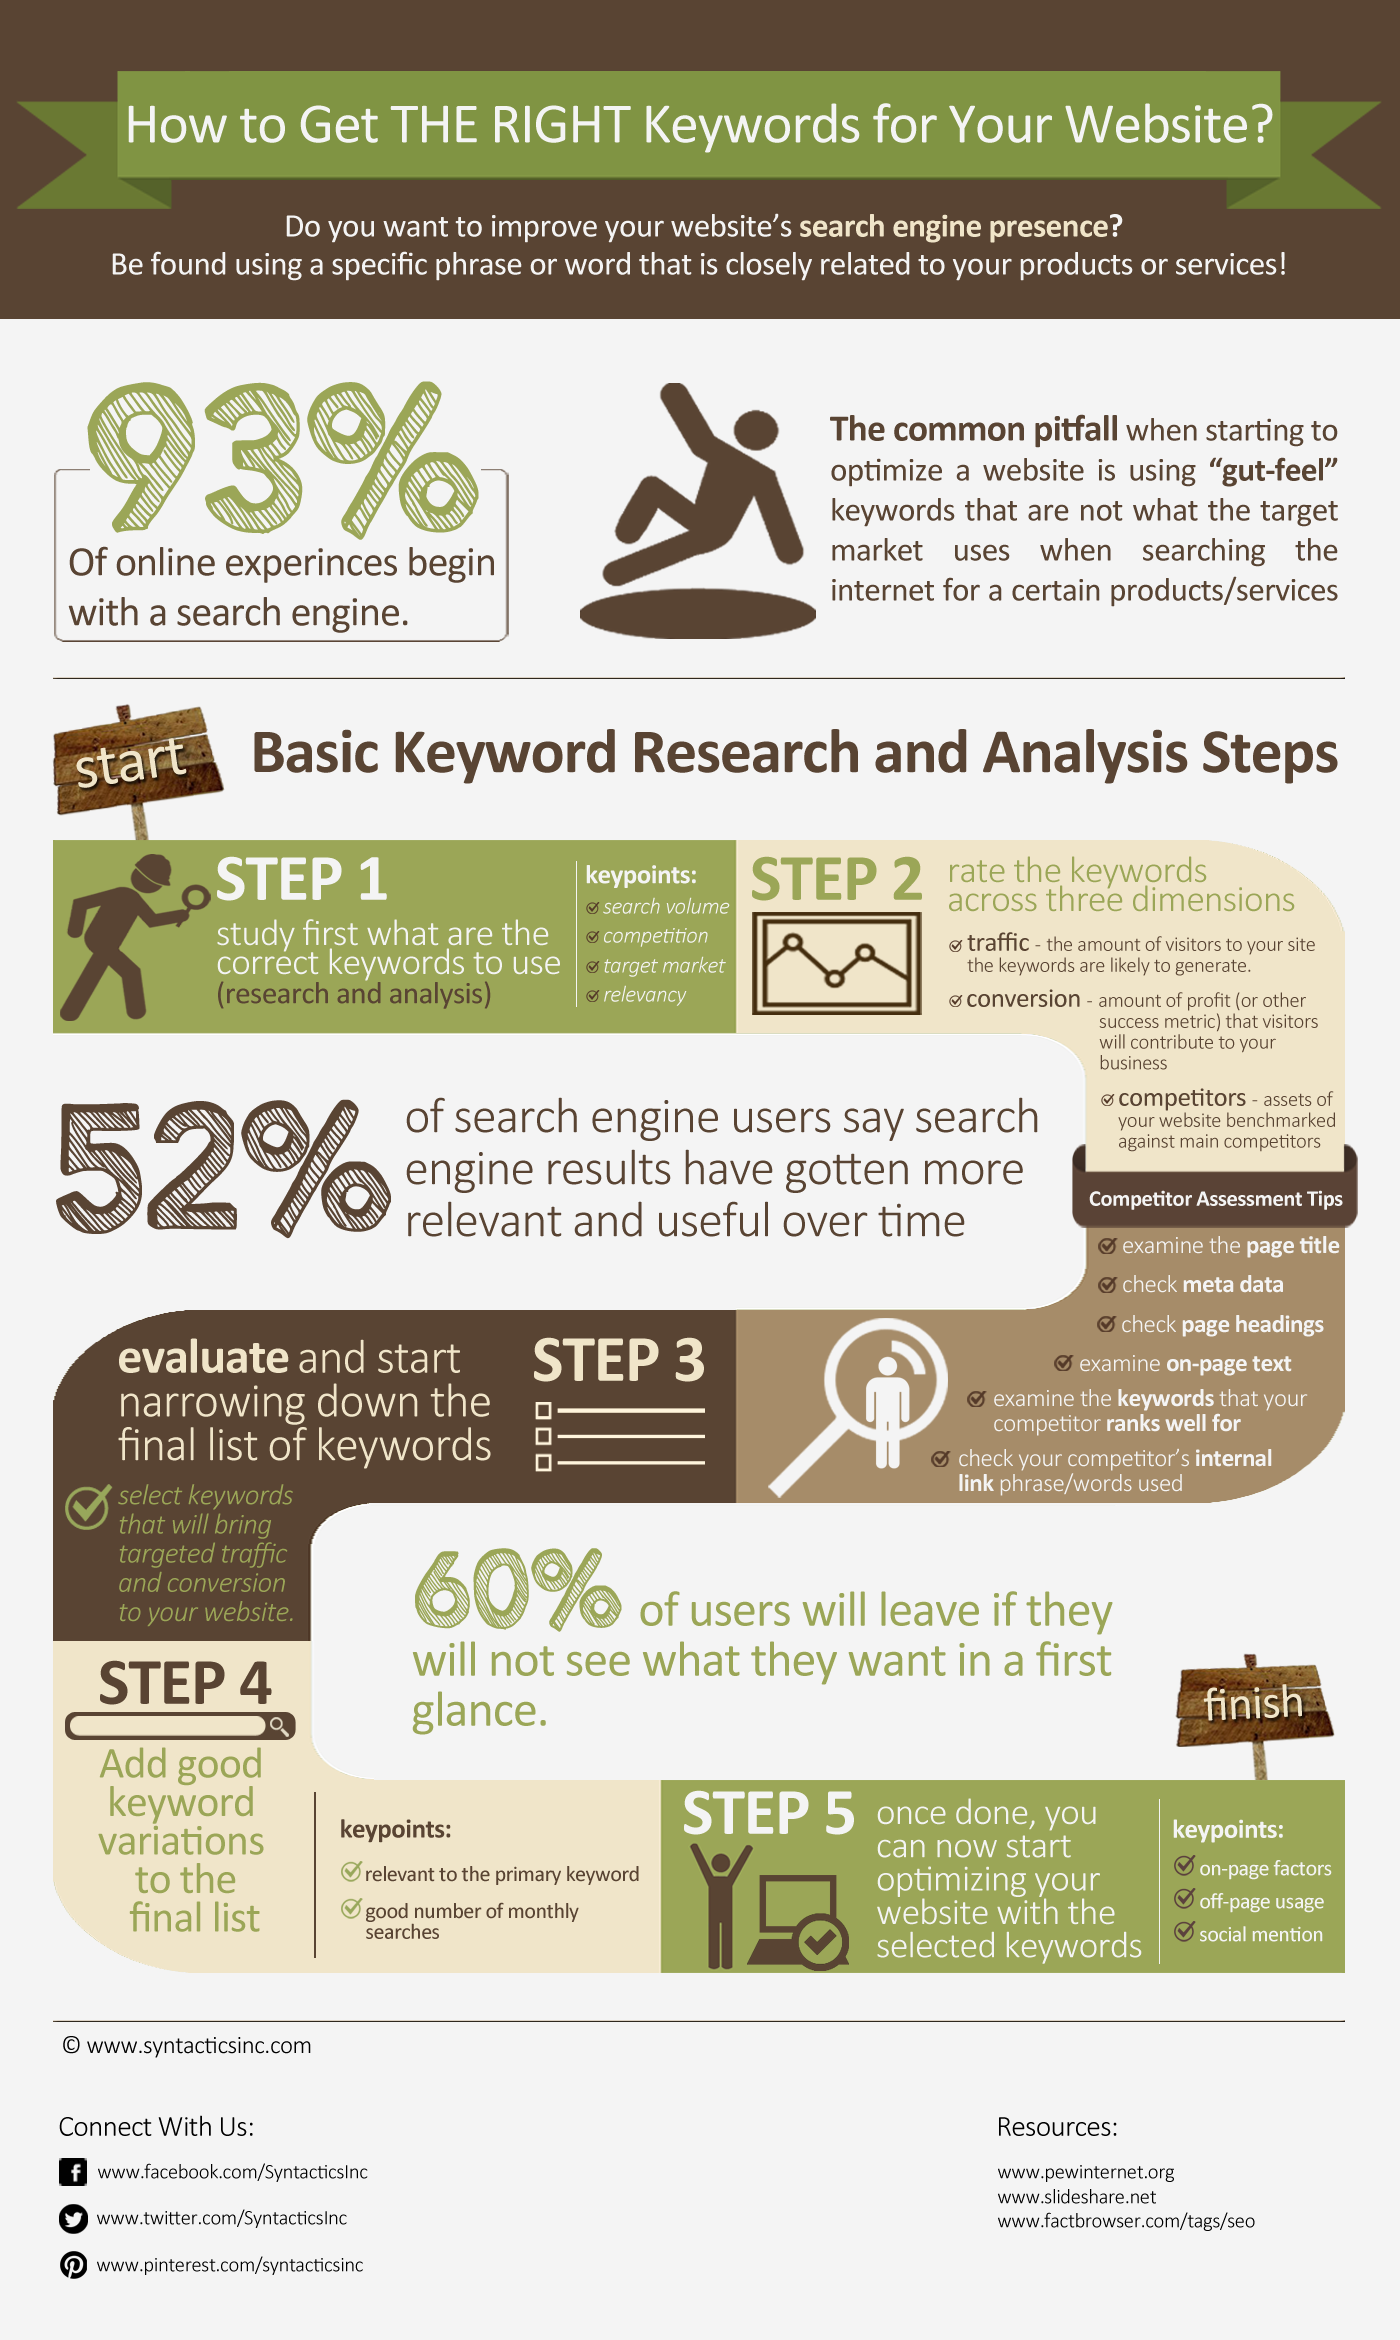 How to Get the RIGHT Keywords for Your Website? STUDY! [INFOGRAPHIC]